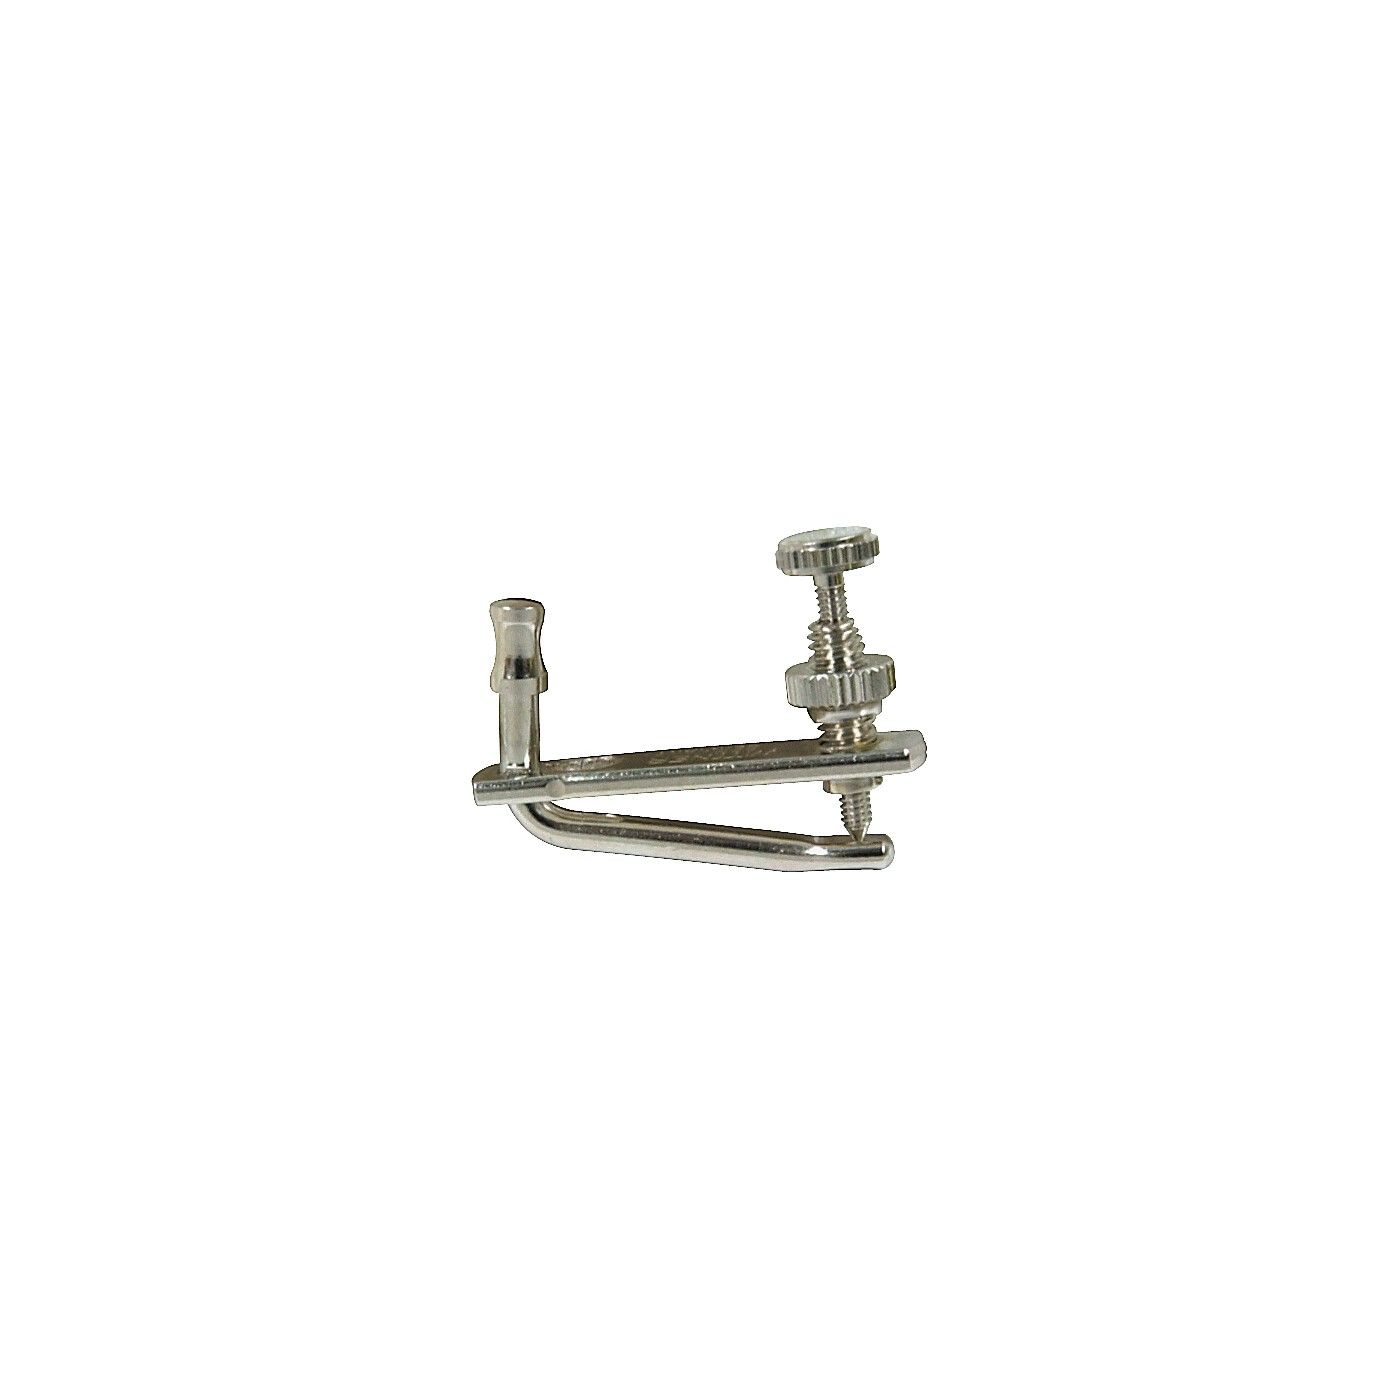 Wittner Violin String Adjuster Fixed on Tailpiece thumbnail